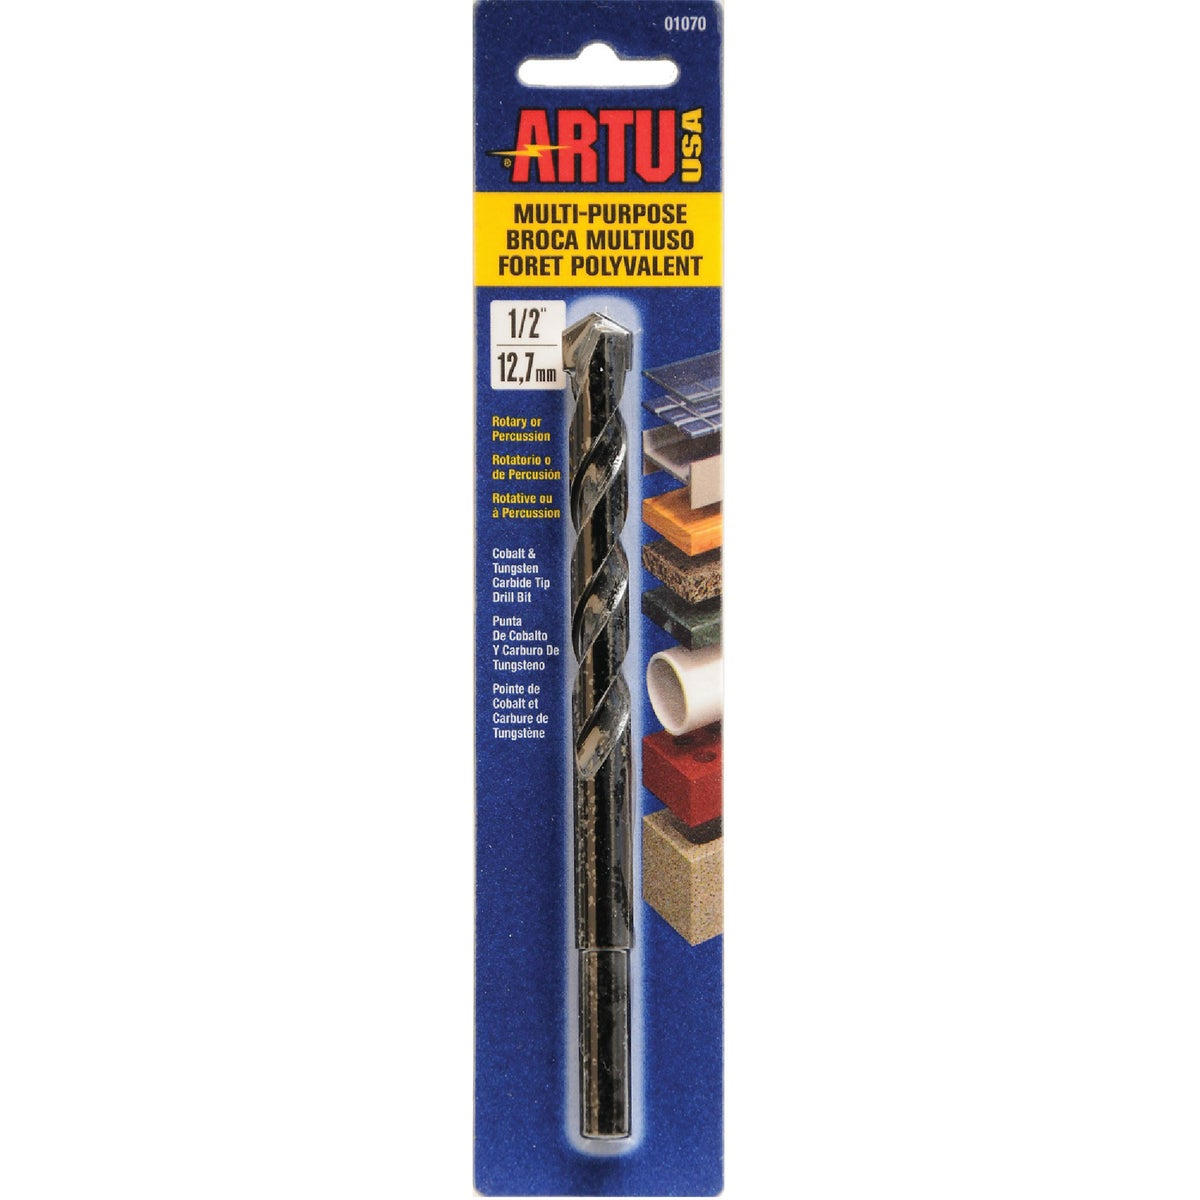 "1/2"" MULTIPURPOSE BIT - 01070 by Artu Usa Inc"